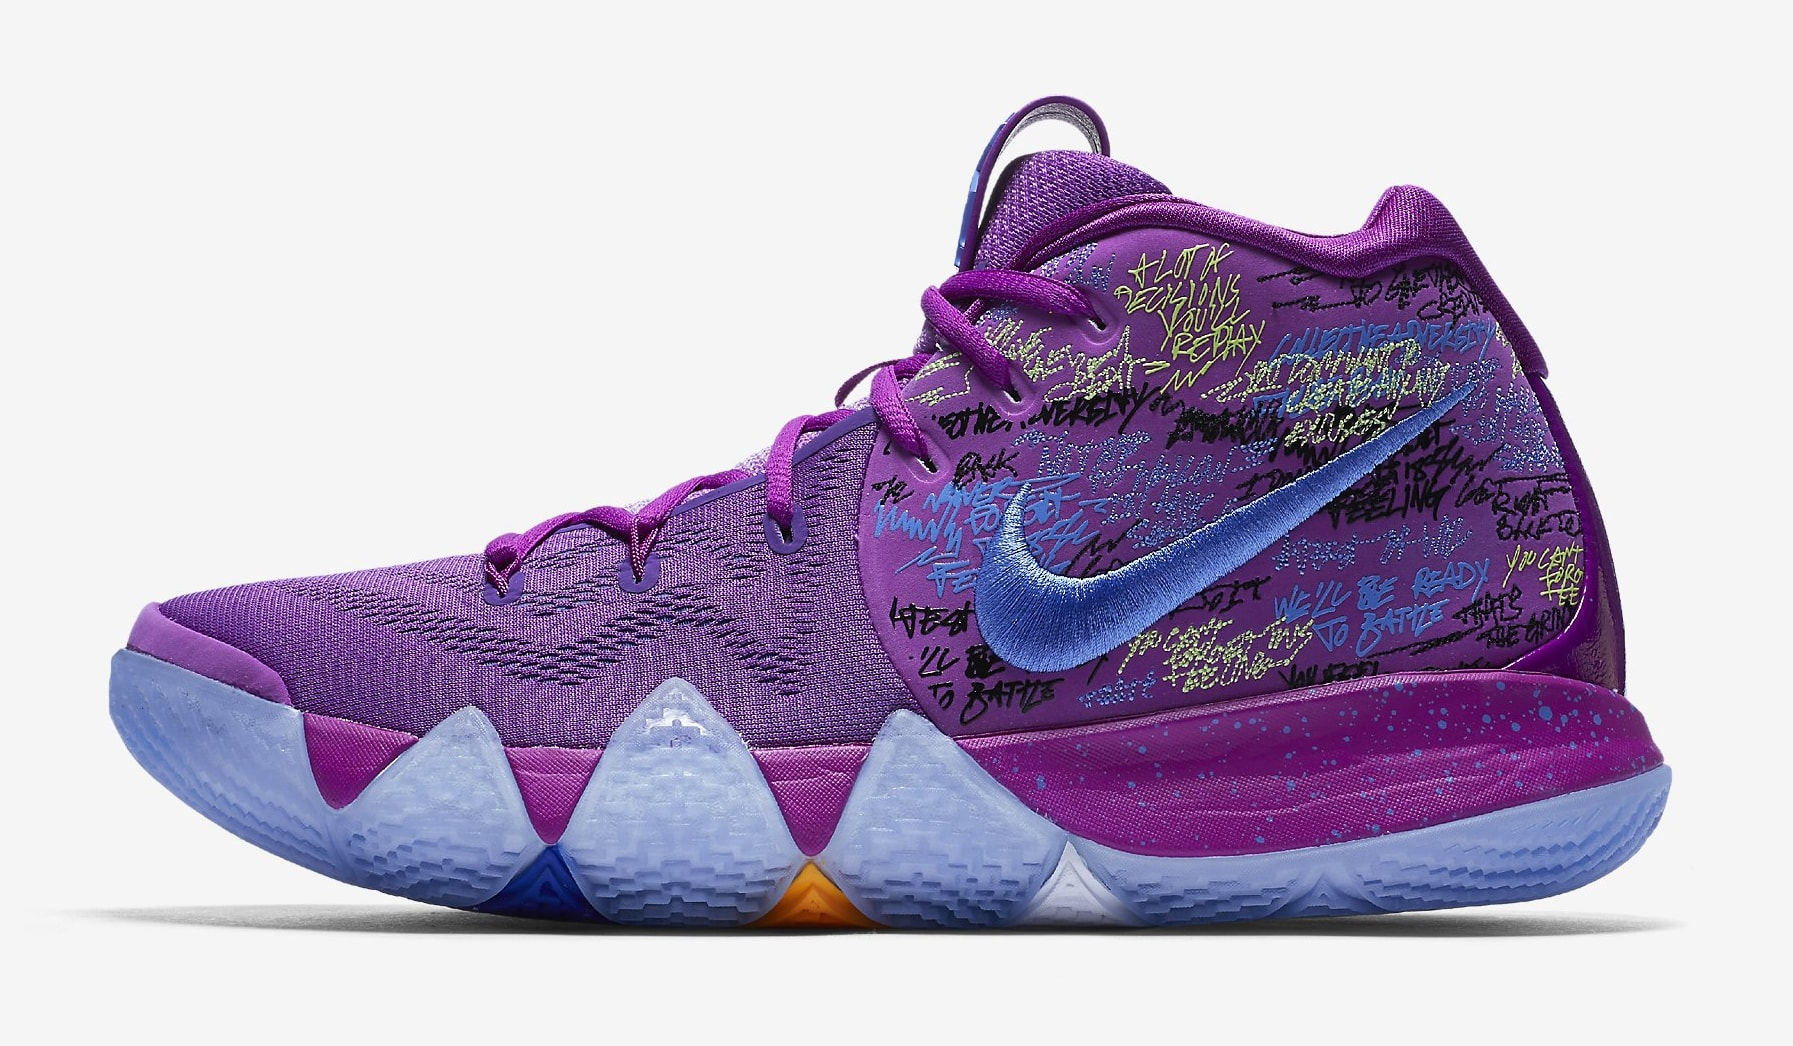 buy online 9cf2a 105a6 Nike Kyrie 4 EP Multi-color 943806-900 | Sole Collector